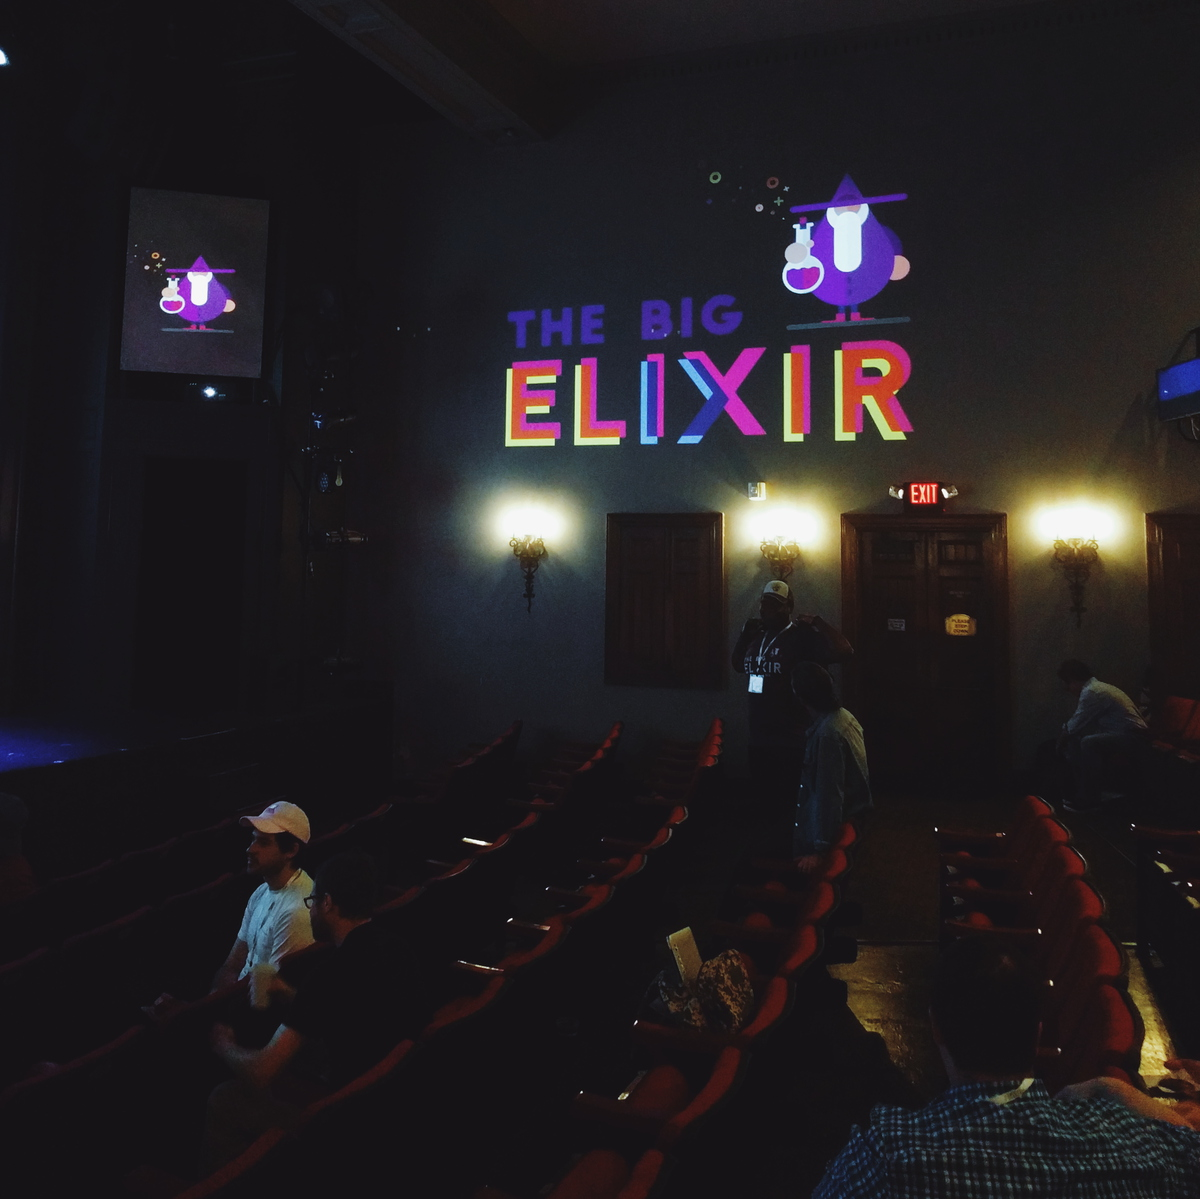 The Big Elixir in a theater